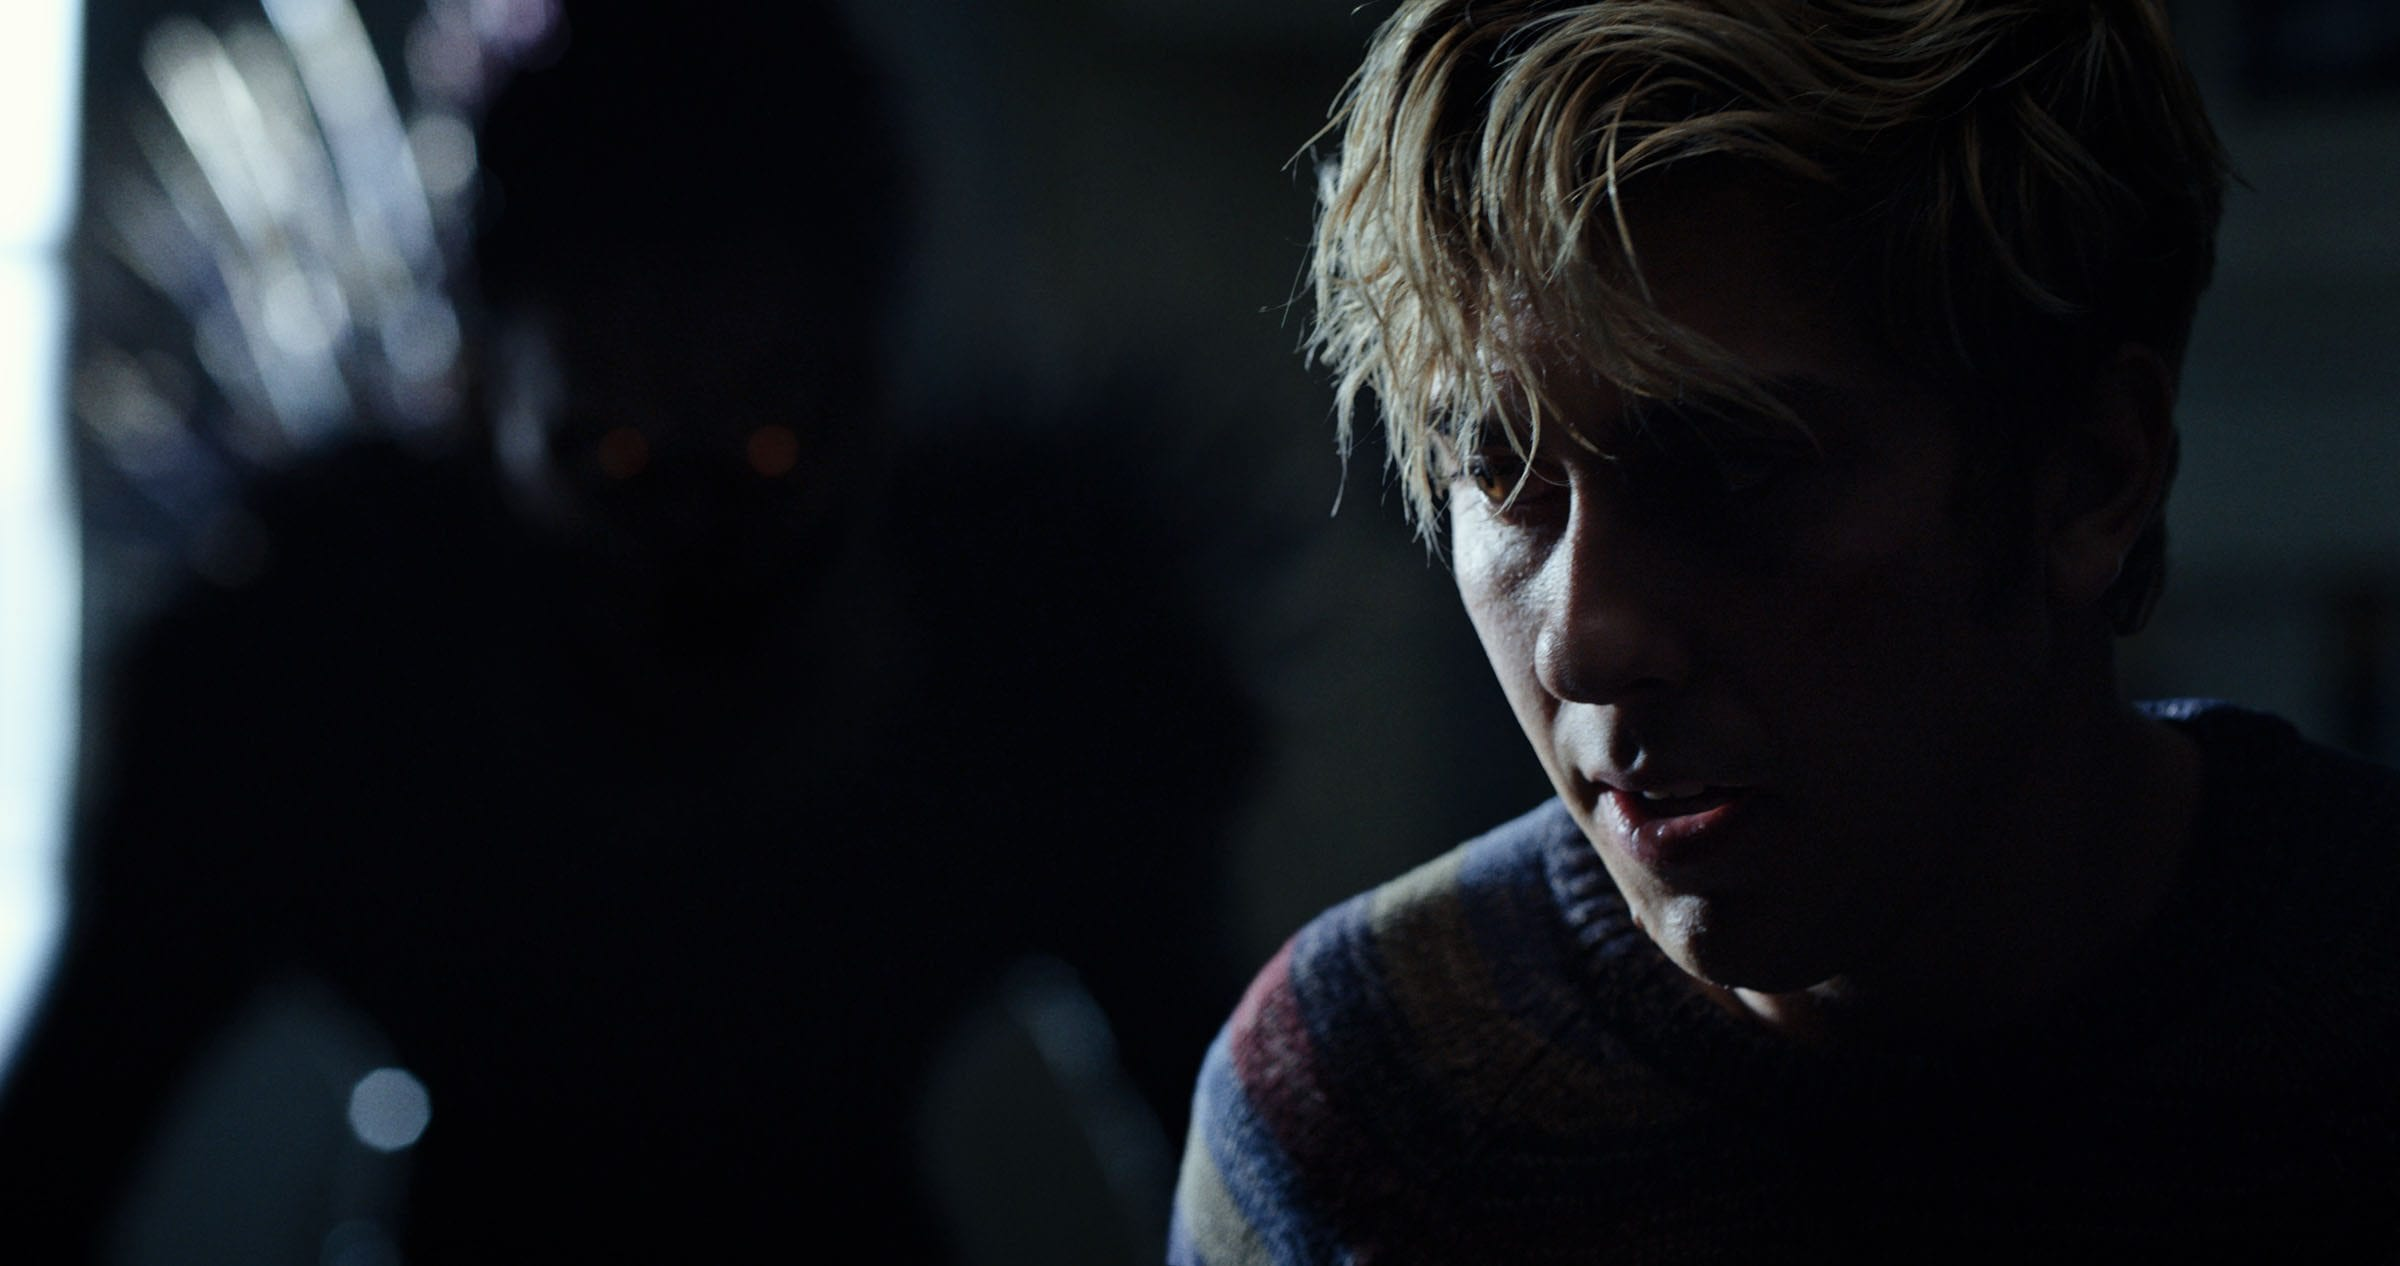 Do date night right this weekend with Film Daily's picks. In 'Death Note', one lucky high schooler stumbles upon the key to power over life and death.